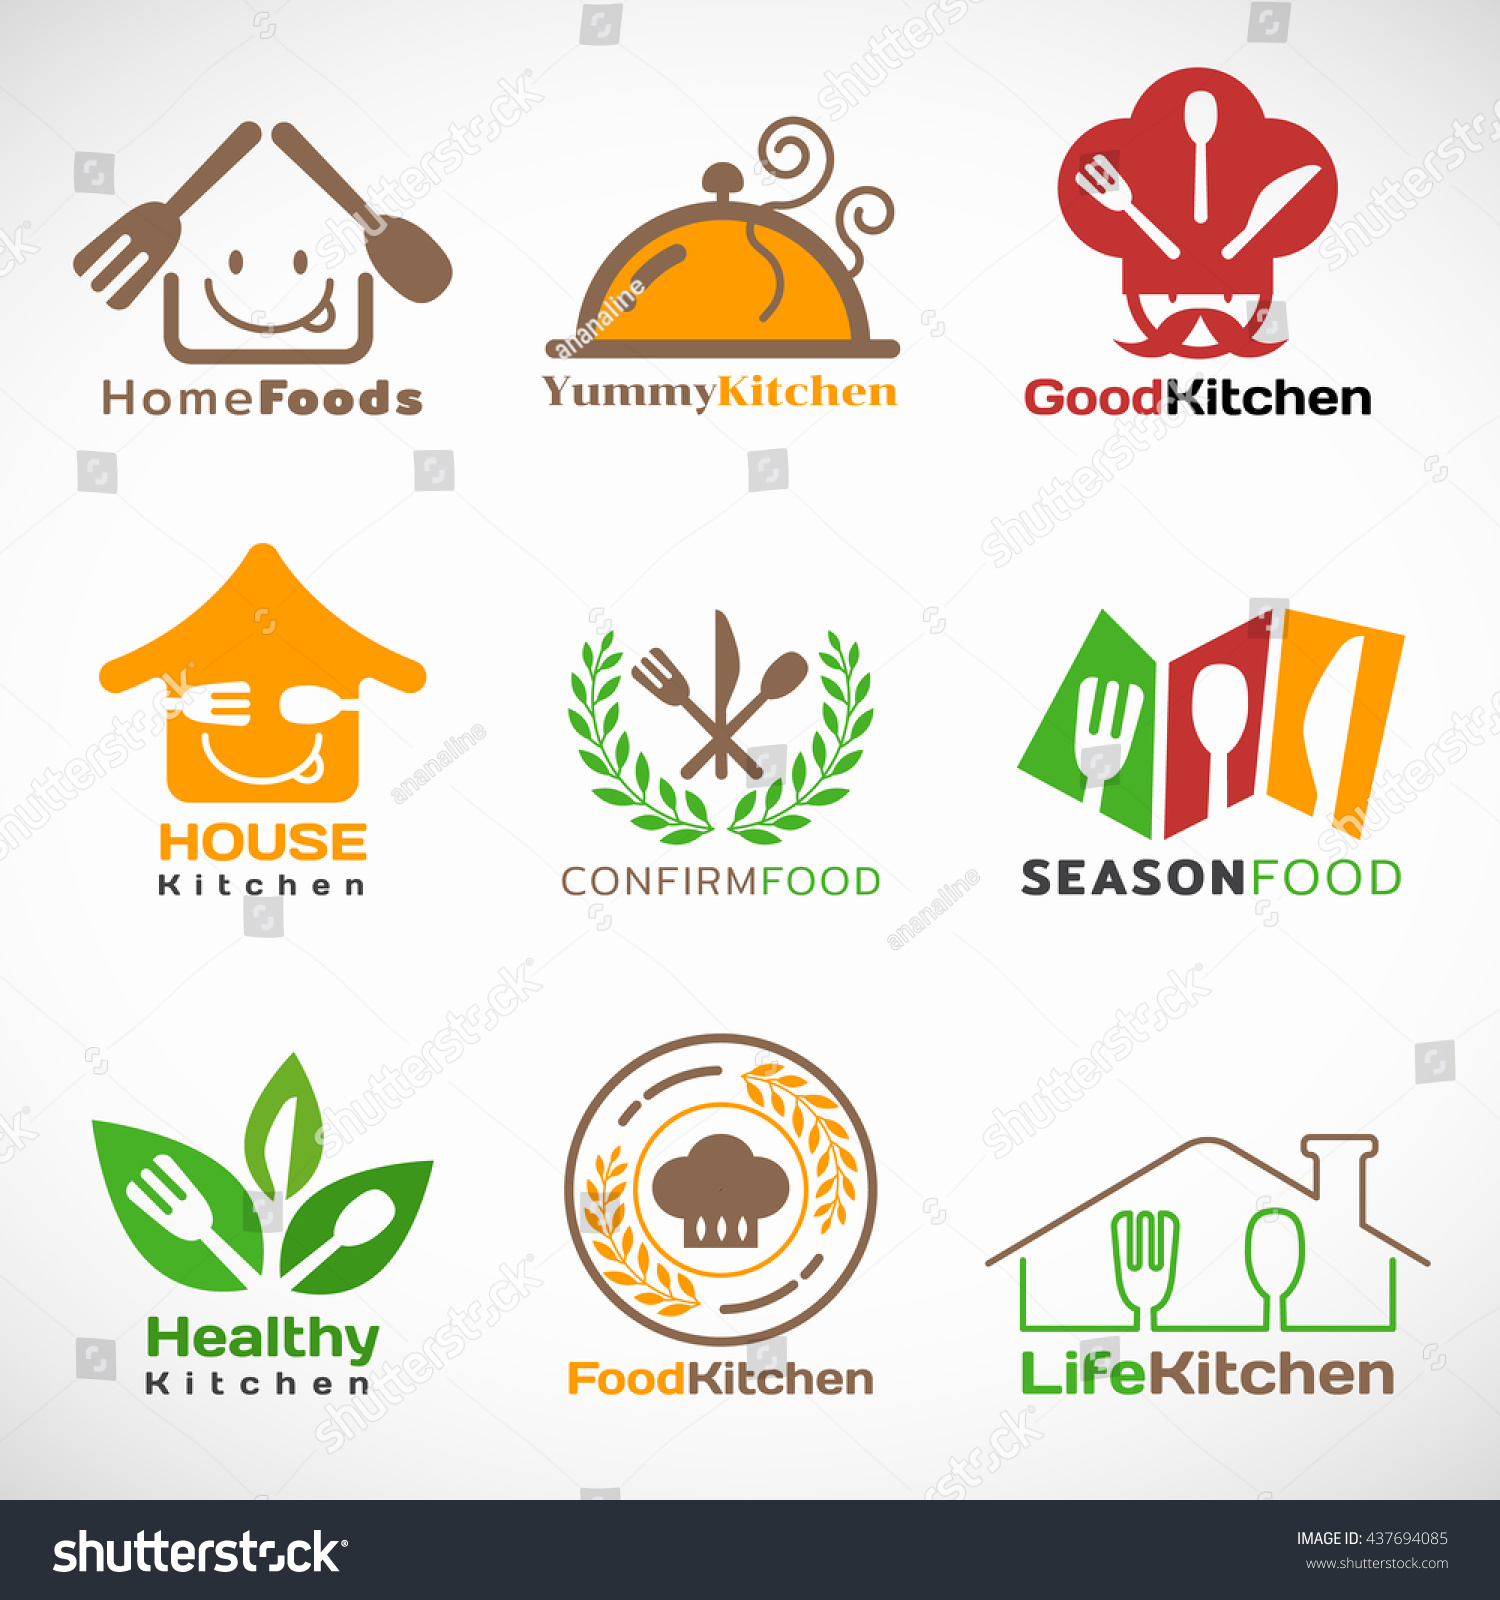 kitchen logo design restaurant home kitchen logo vector set 스톡 벡터 437694085 2247